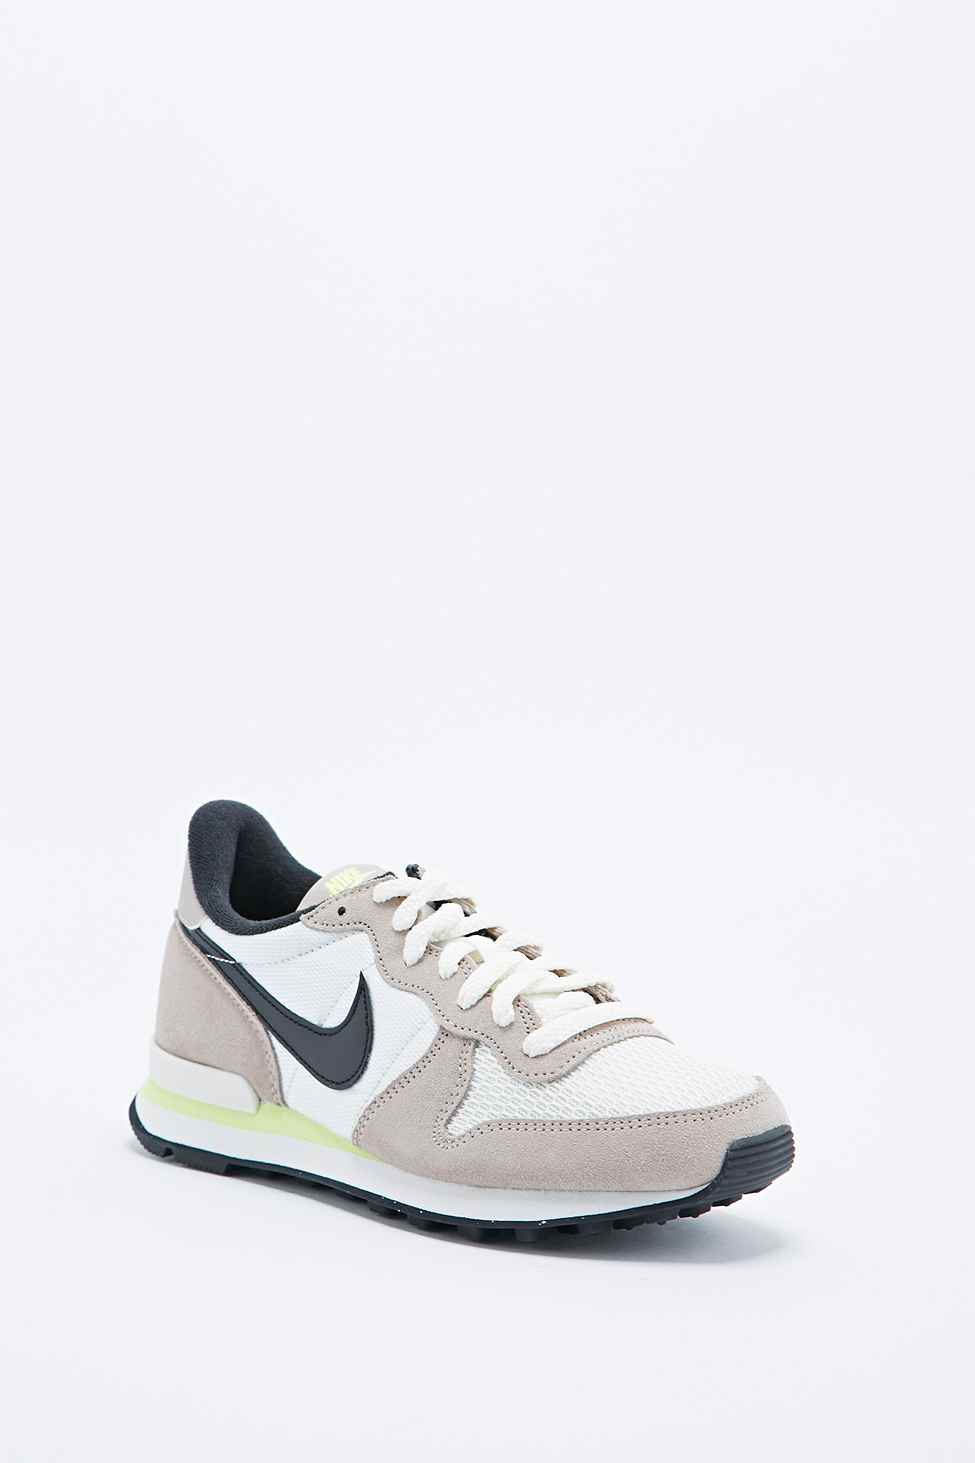 best service d368d 567a3 ... purchase nike internationalist trainers in grey and lime in white lyst  7d8f1 774fb